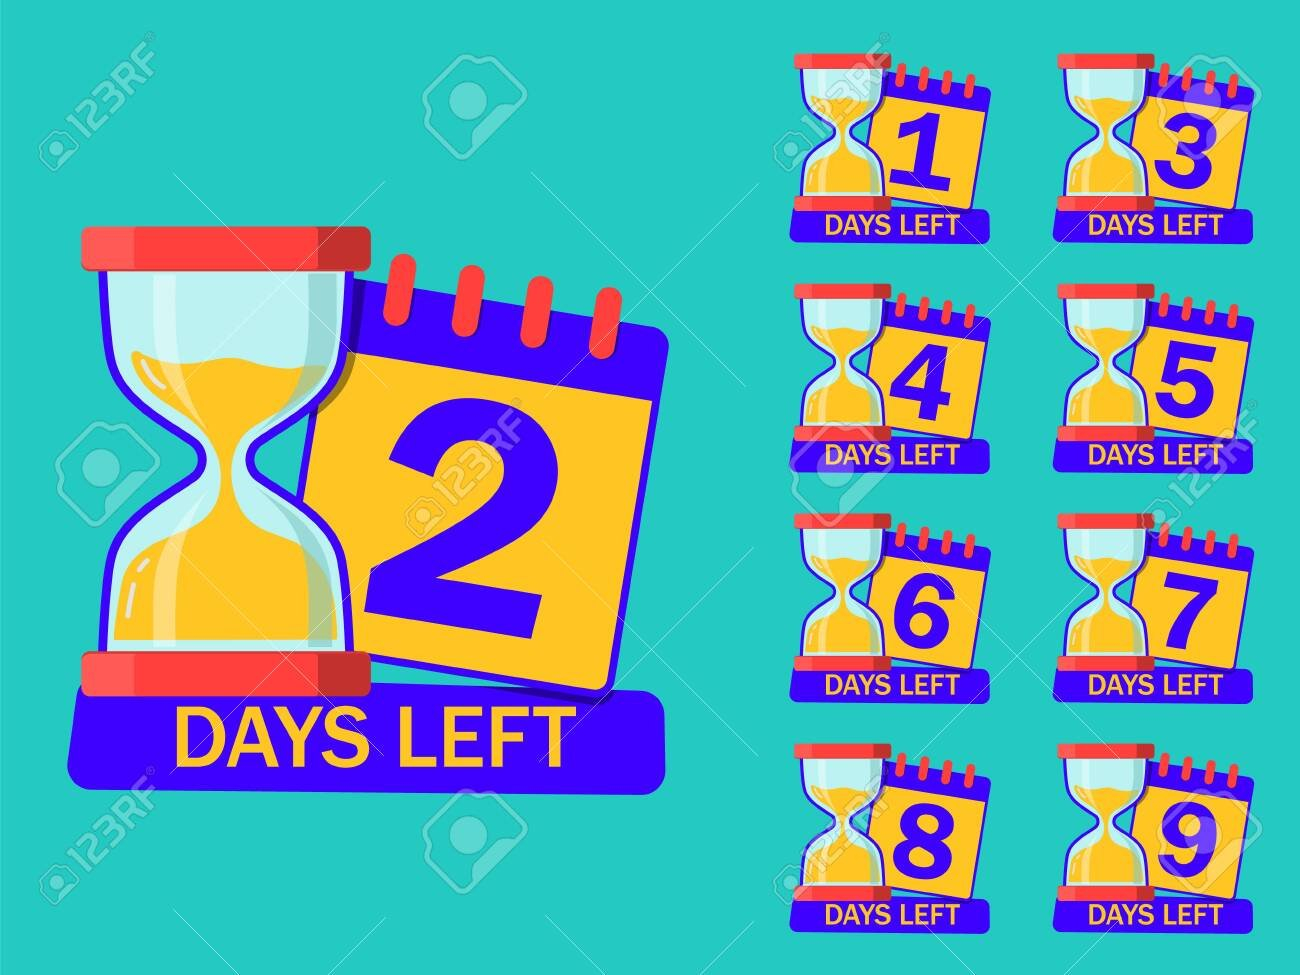 Countdown Timer Days With Hourglass And Calendar. 1, 2, 3, 4,.. Five Year Countdown Calendar